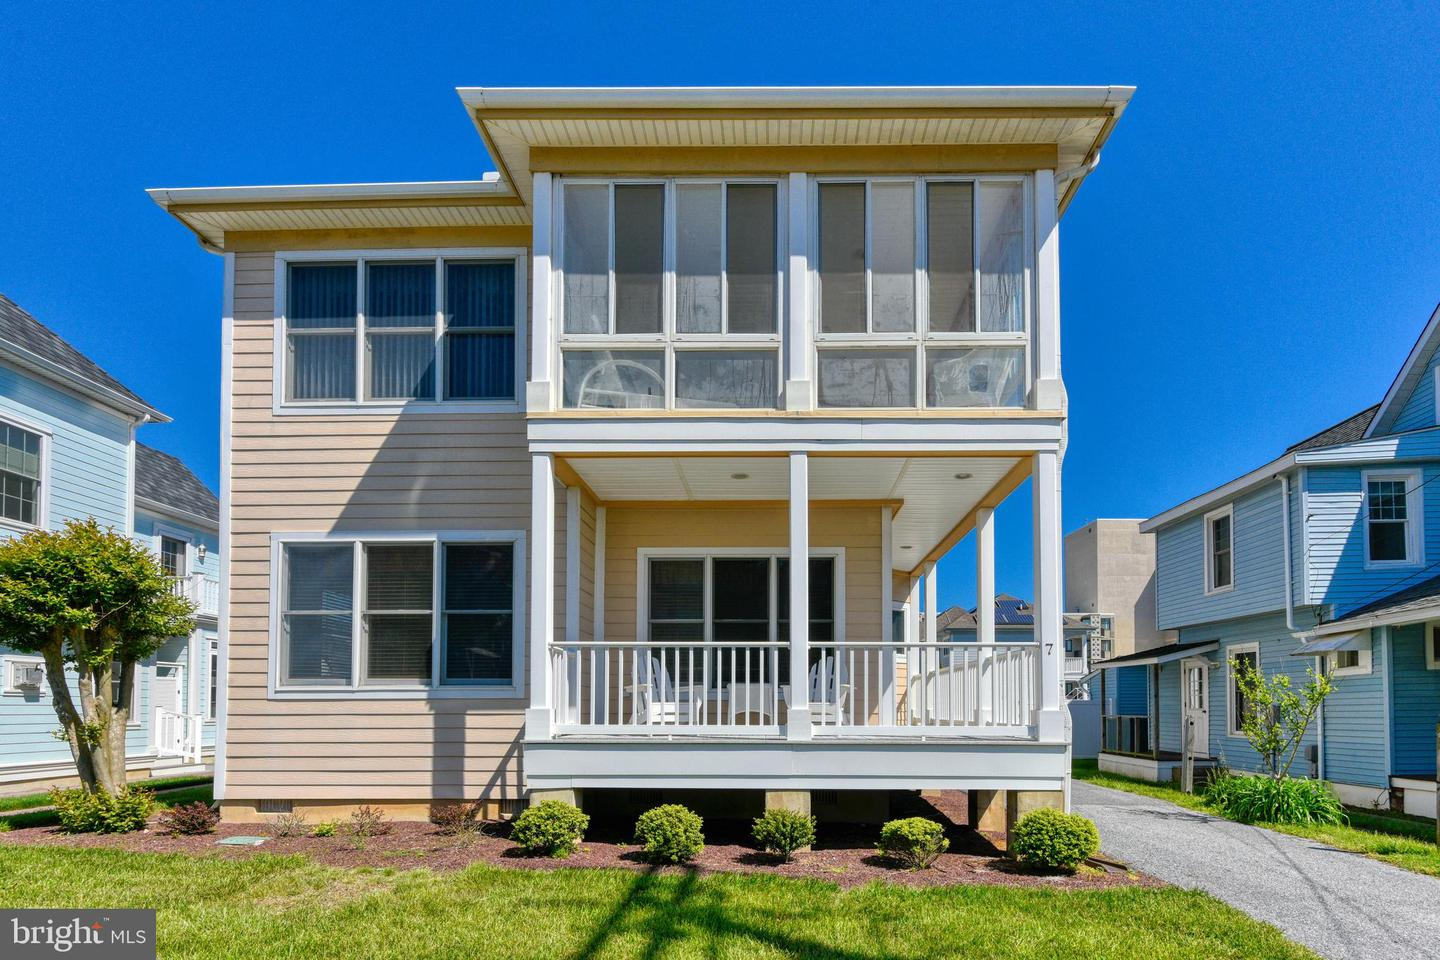 DESU140752-301729566236-2019-05-20-15-11-27 7 Olive Ave | Rehoboth Beach, DE Real Estate For Sale | MLS# Desu140752  - Coldwell Banker Resort Realty